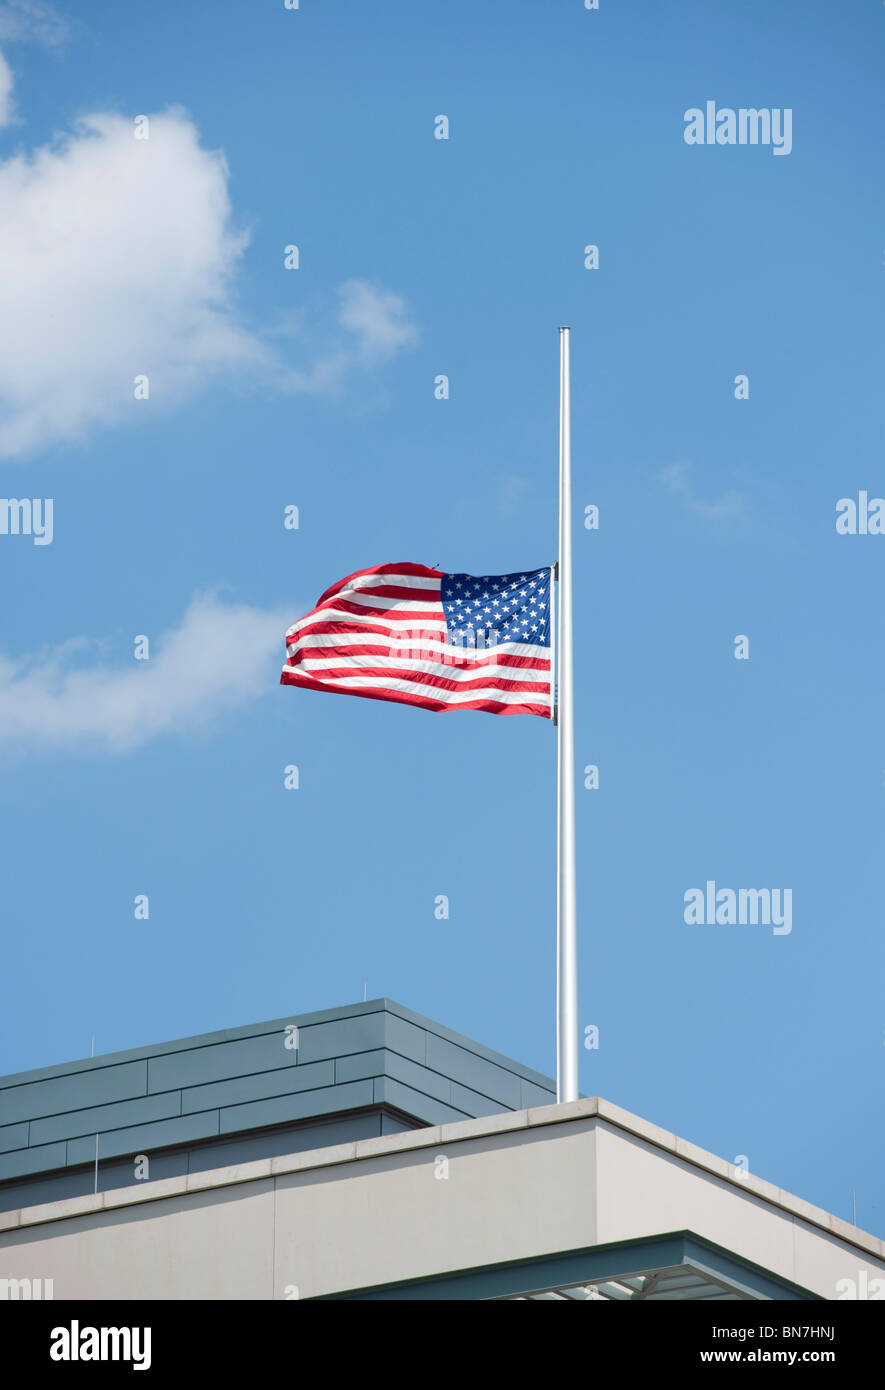 Unites States of America flag flying at half mast above American Embassy in Berlin Germany - Stock Image